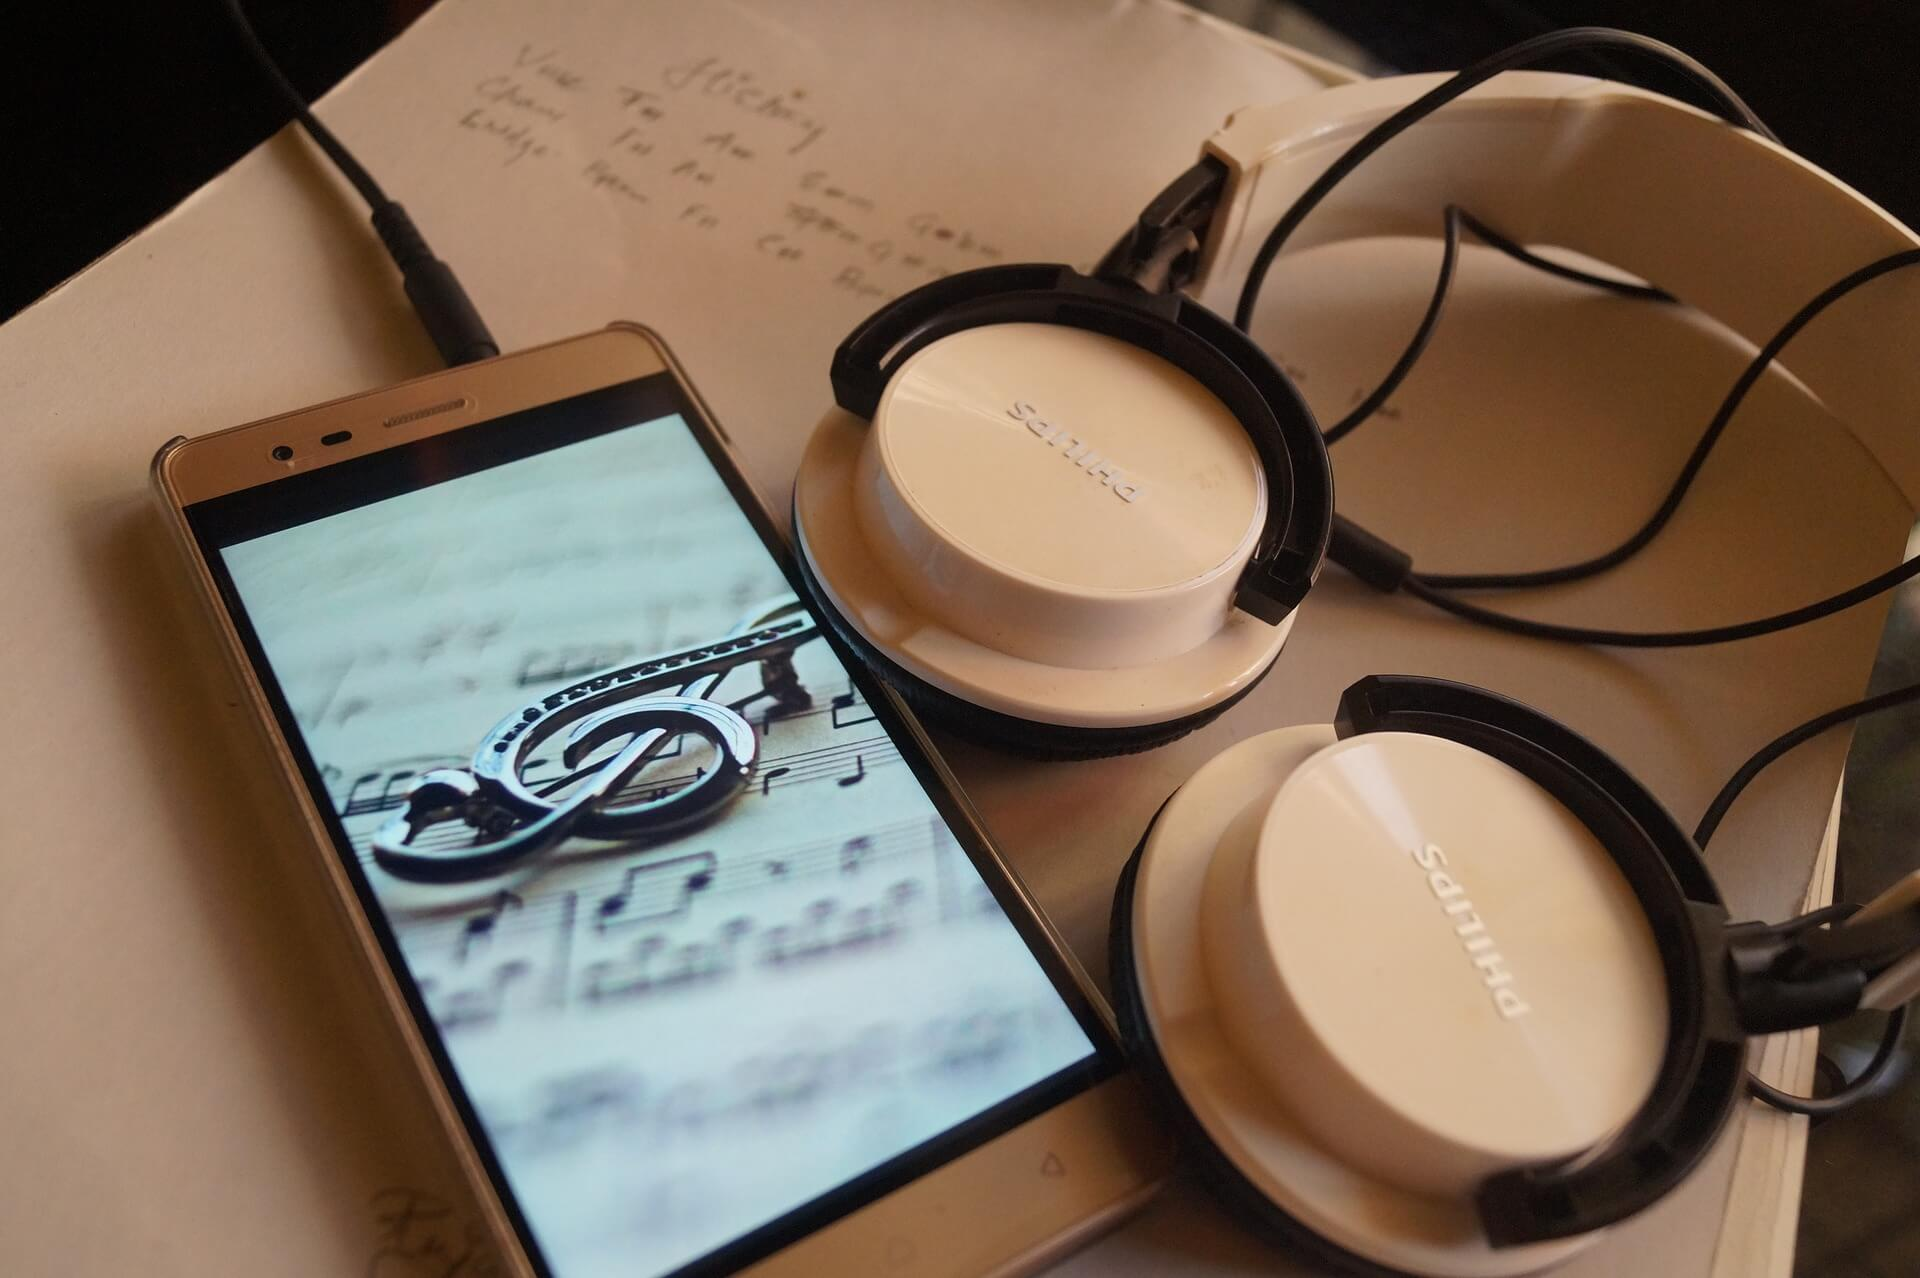 smartphone with violine key image and headphone on a table